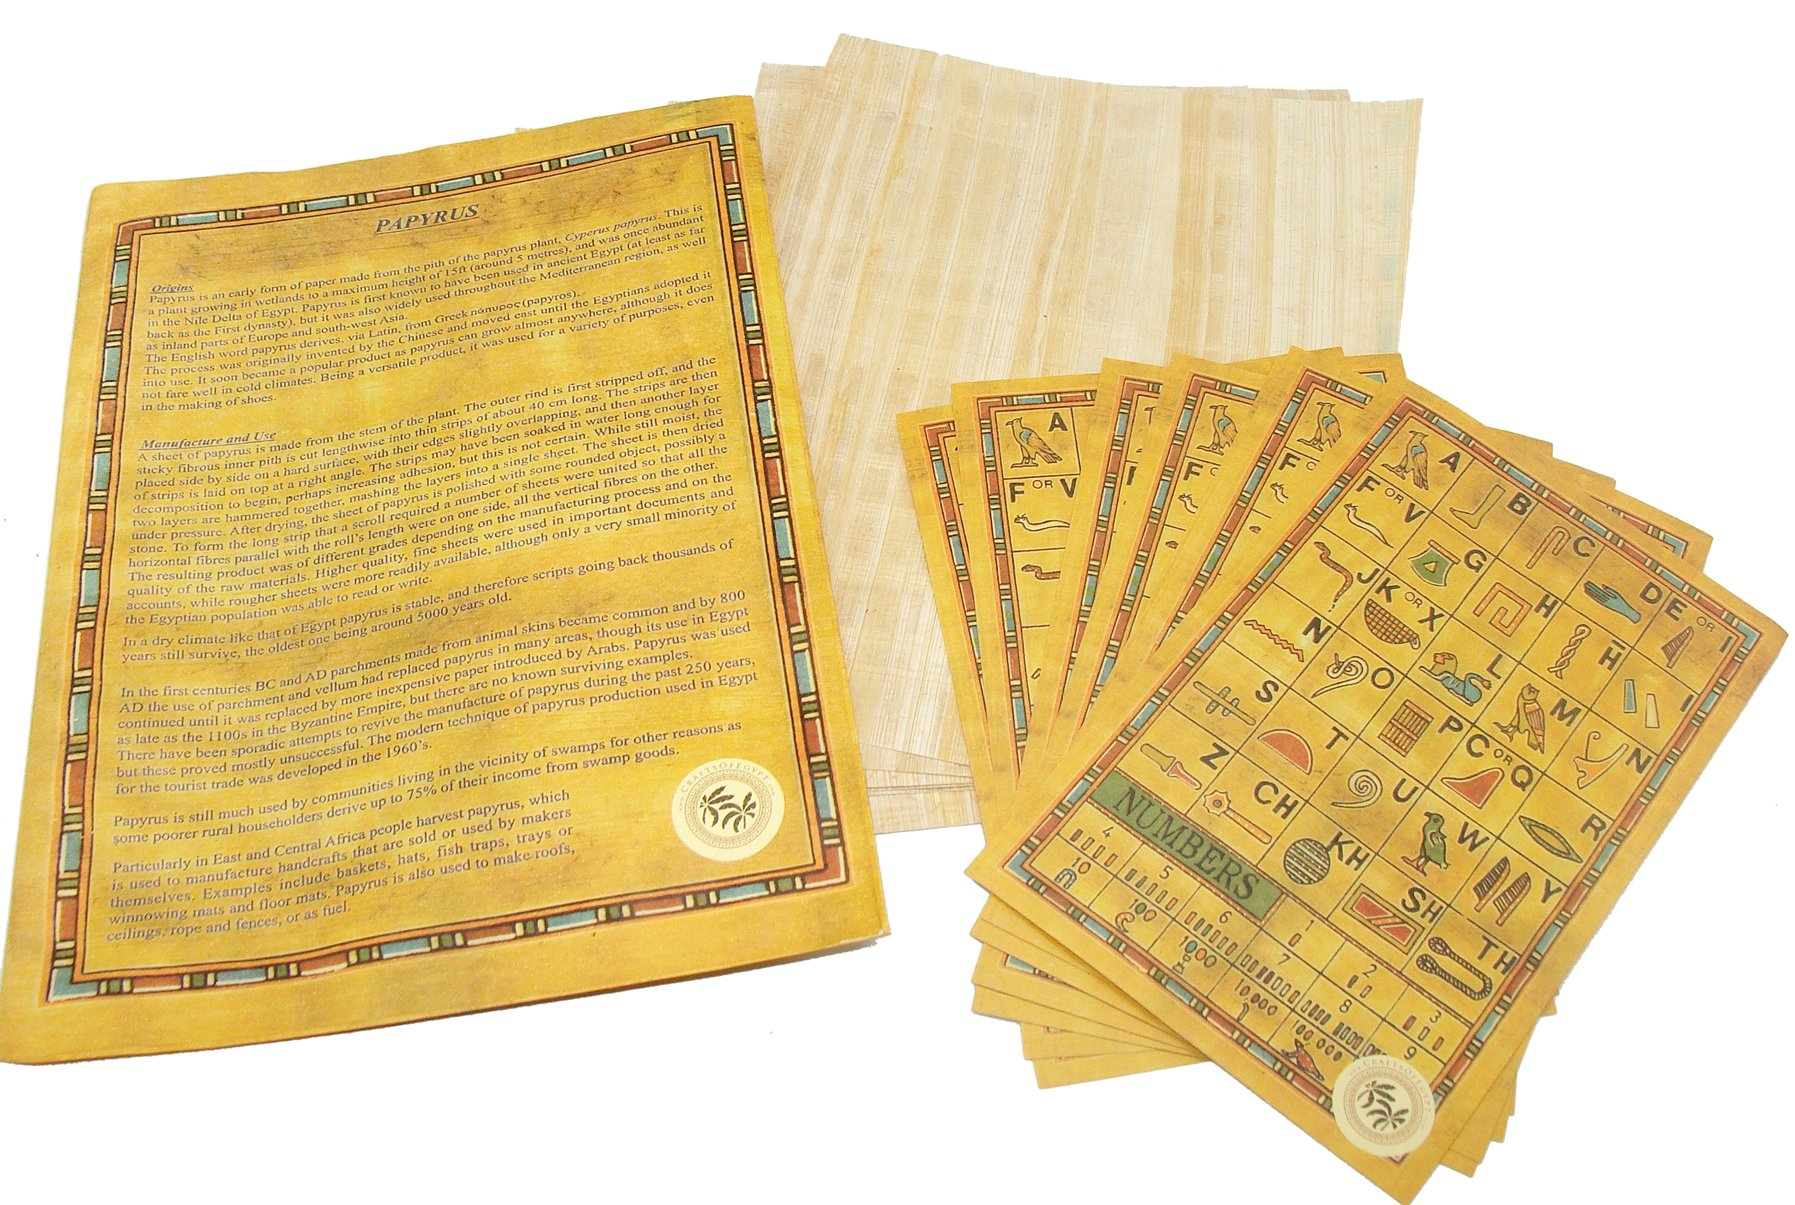 Set 10 Egyptian Papyrus Paper 6x8 Inch (15x20 cm) - Ancient Alphabets Papyrus Sheets-Papyri for Art Project, Scrapbooking, And School History - Ideal Teaching Aid Scroll Paper- By CraftsOfEgypt